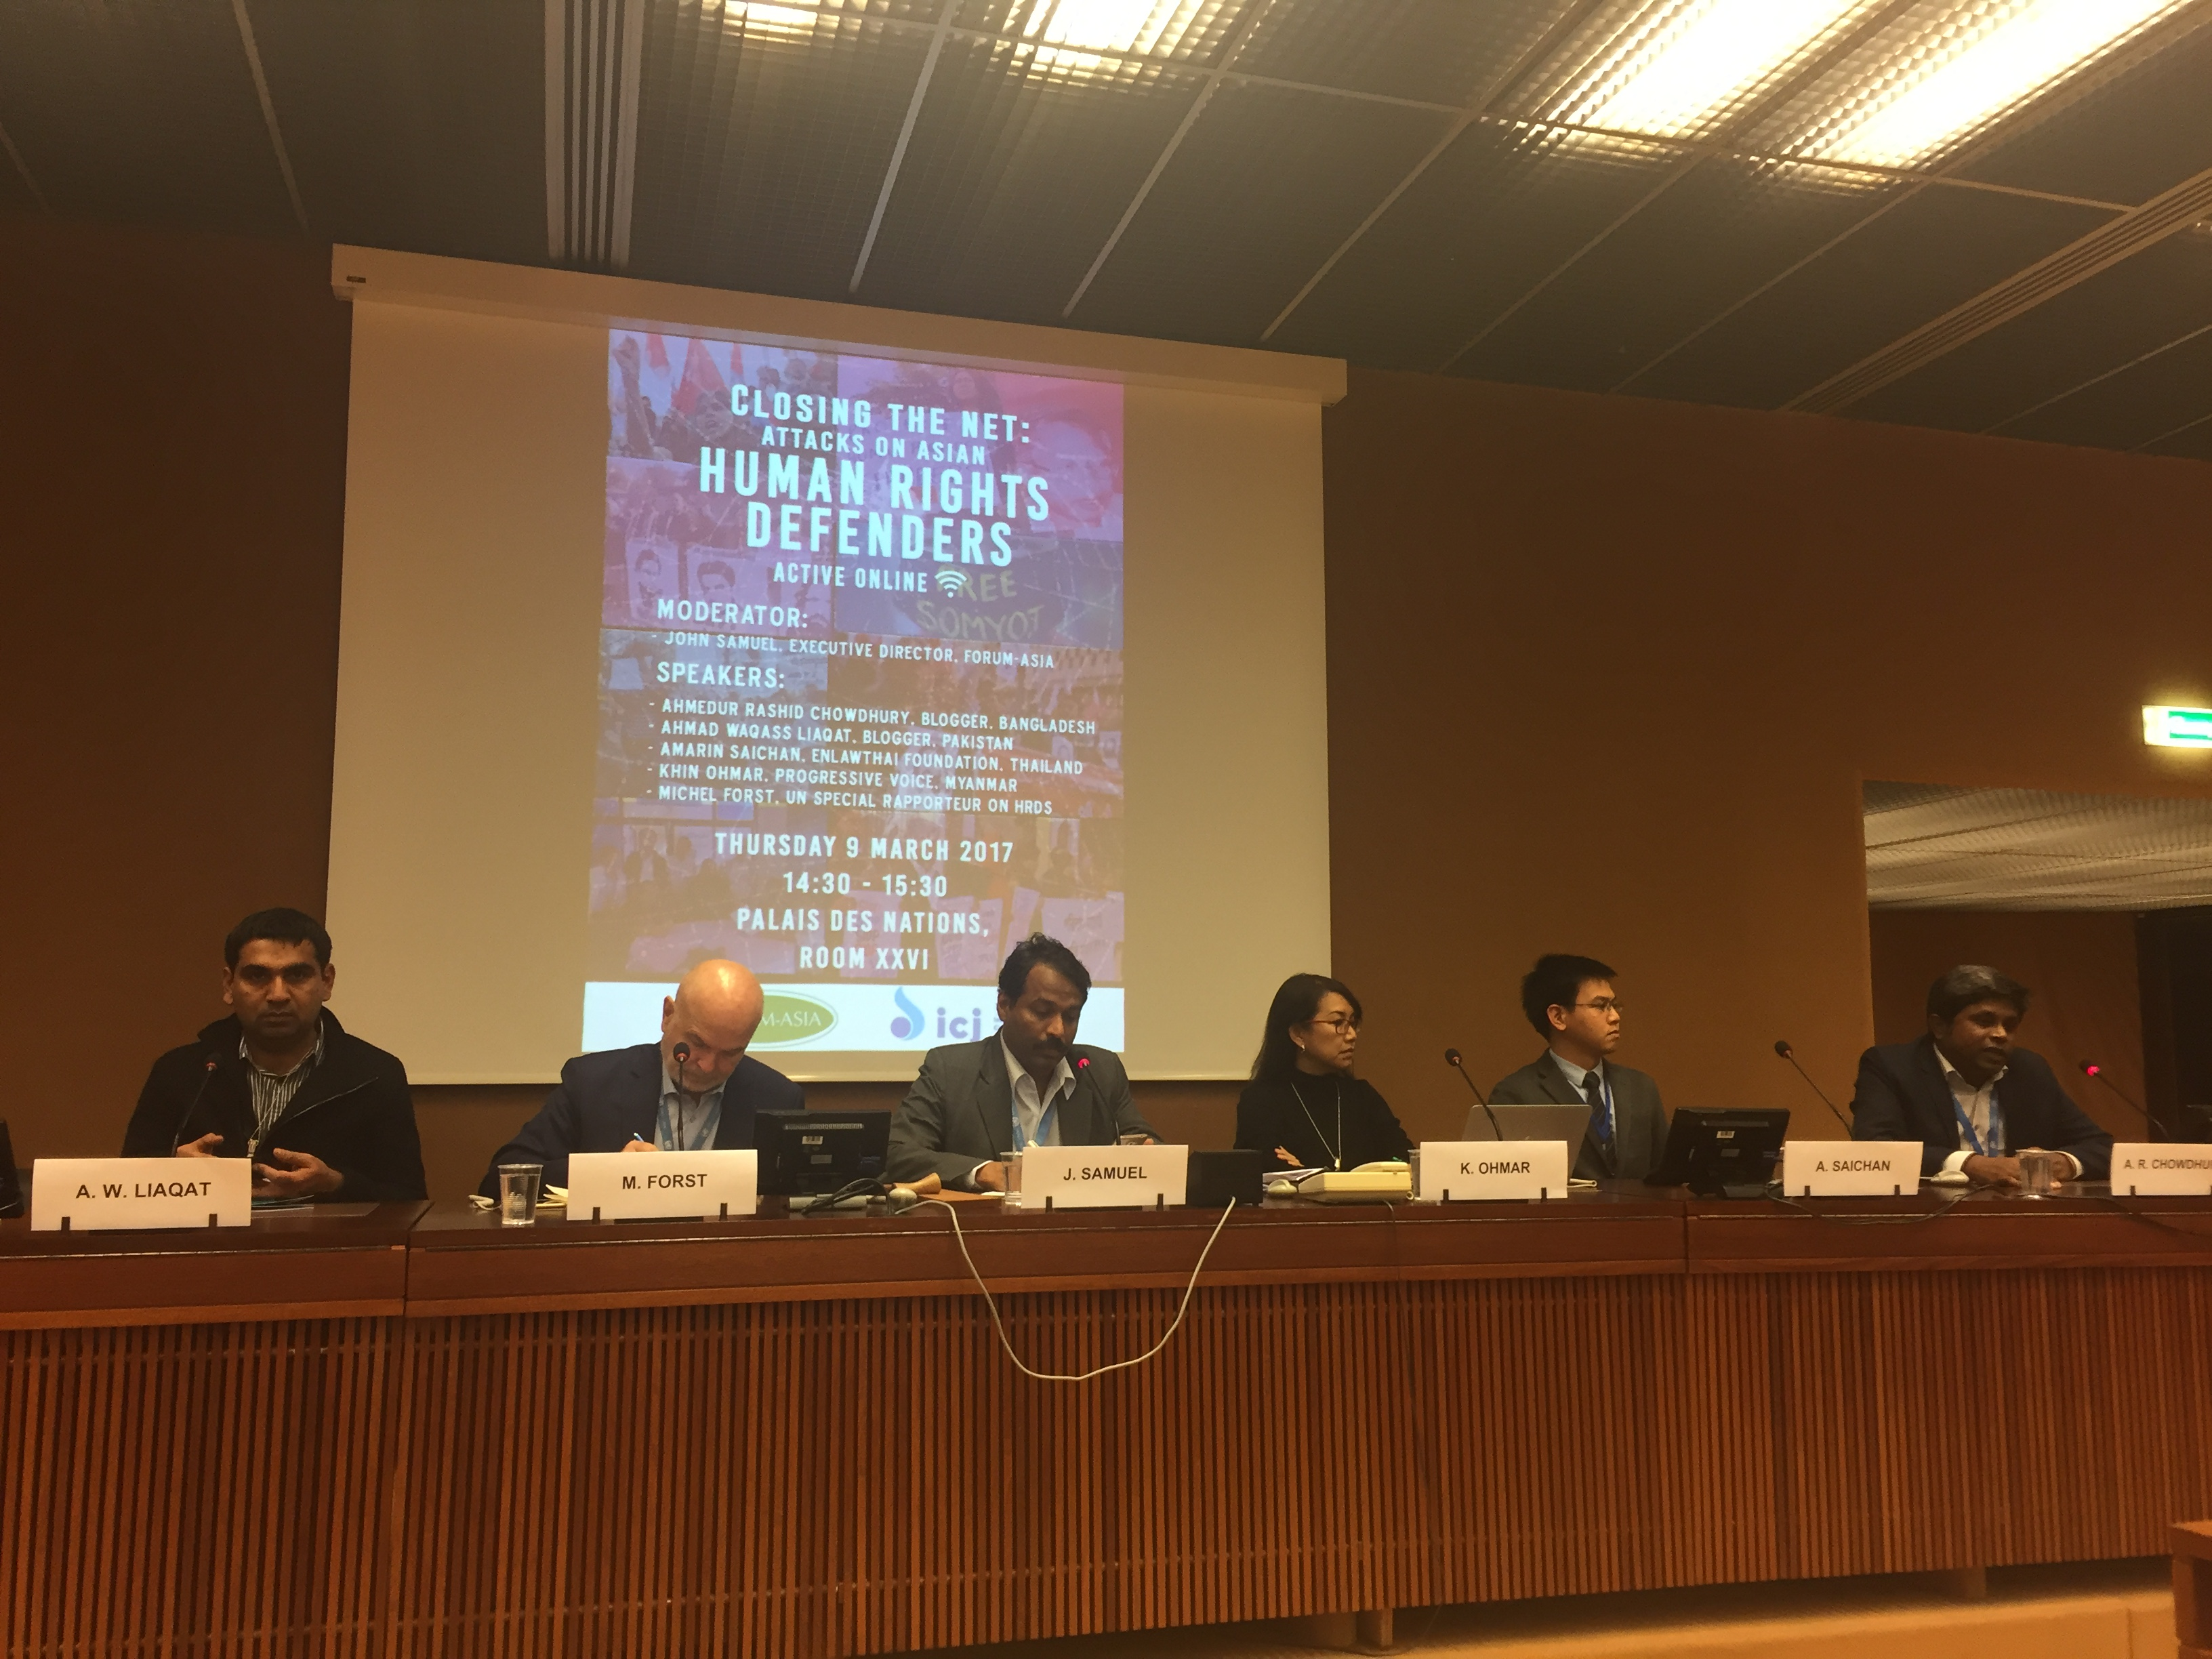 FORUM-ASIA at UN Human Rights Council Session 34 « FORUM-ASIA